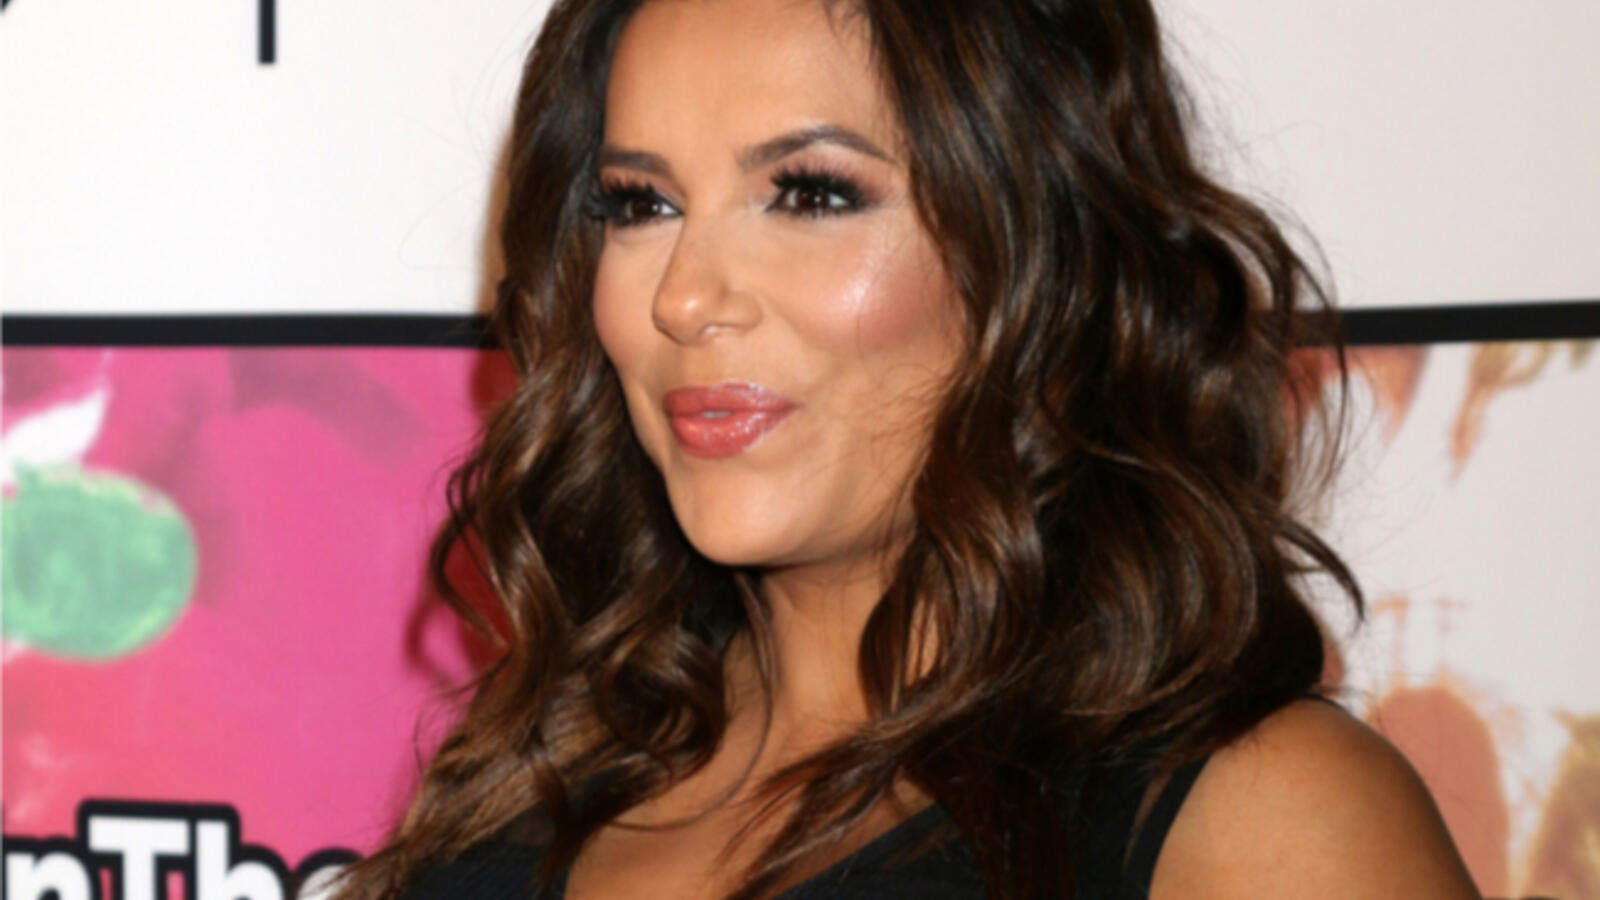 Eva Longoria looked ready to pop (Source: Kathy Hutchins / Shutterstock )